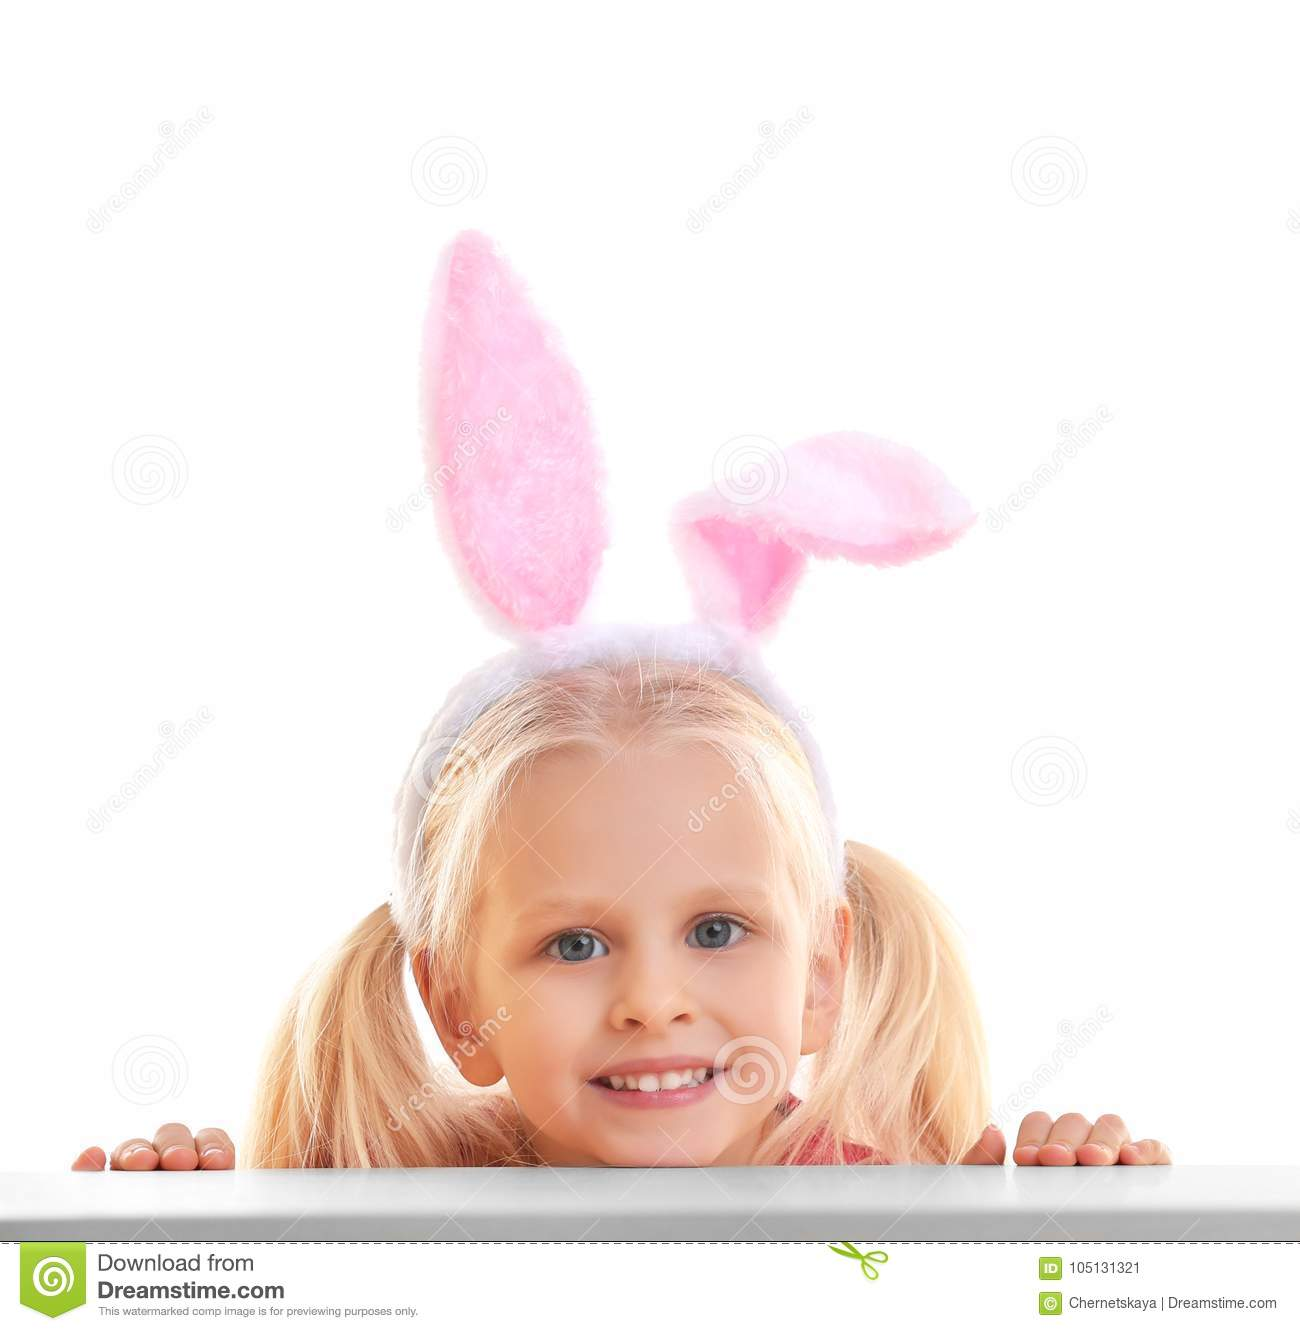 Cute little girl with bunny ears and basket full of Easter eggs on background